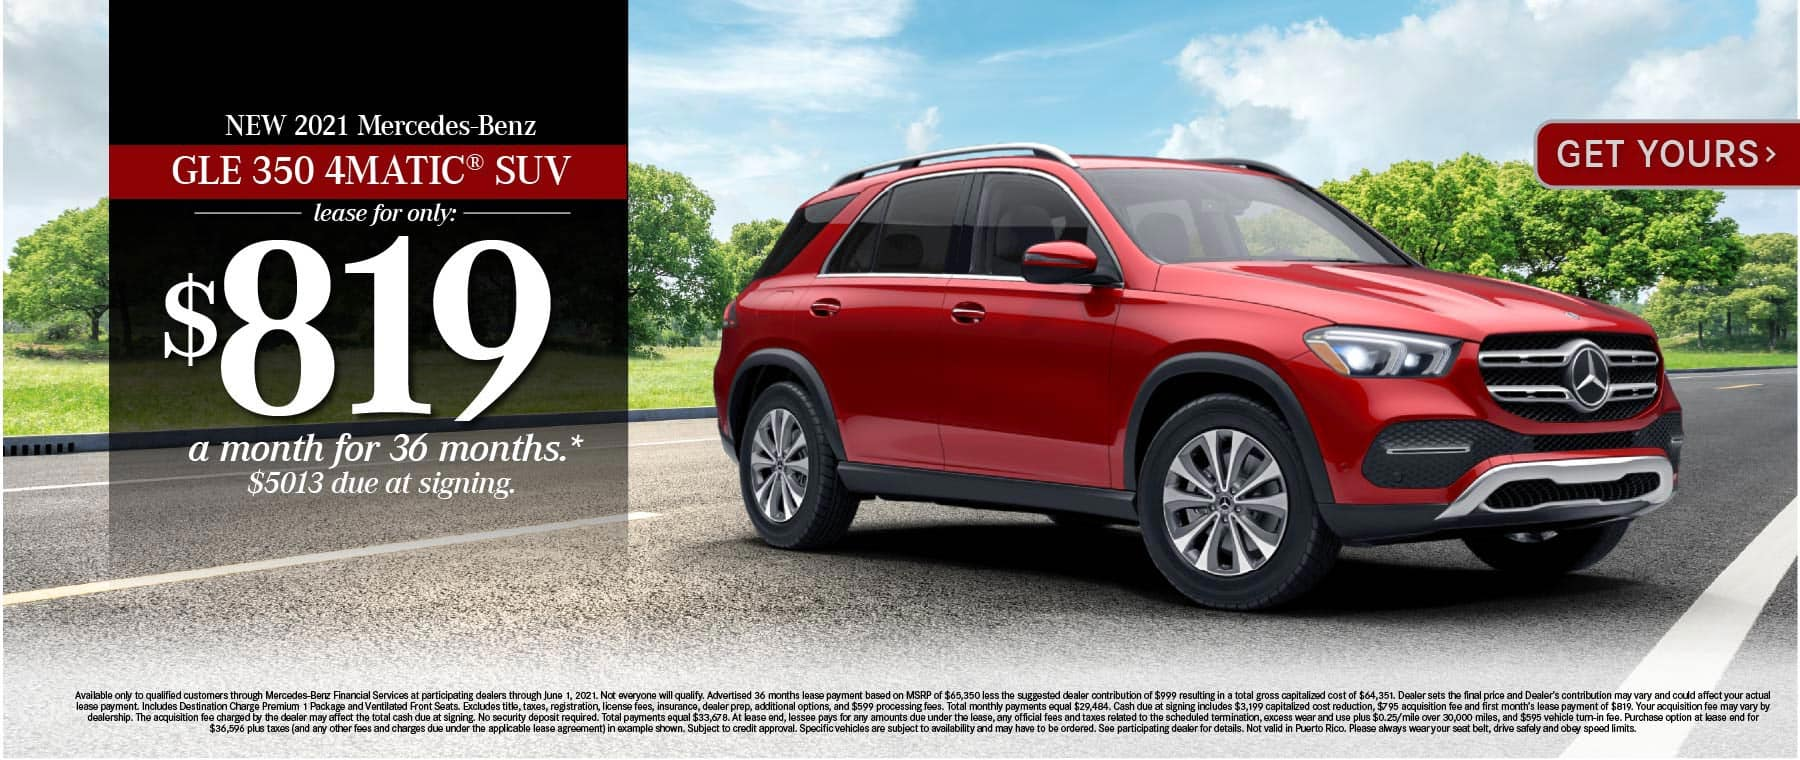 New 2021 Mercedes-Benz GLE 350 4MATIC® Lease for only: $819 a month for 36 months. $5013 due at signing. Get Yours.